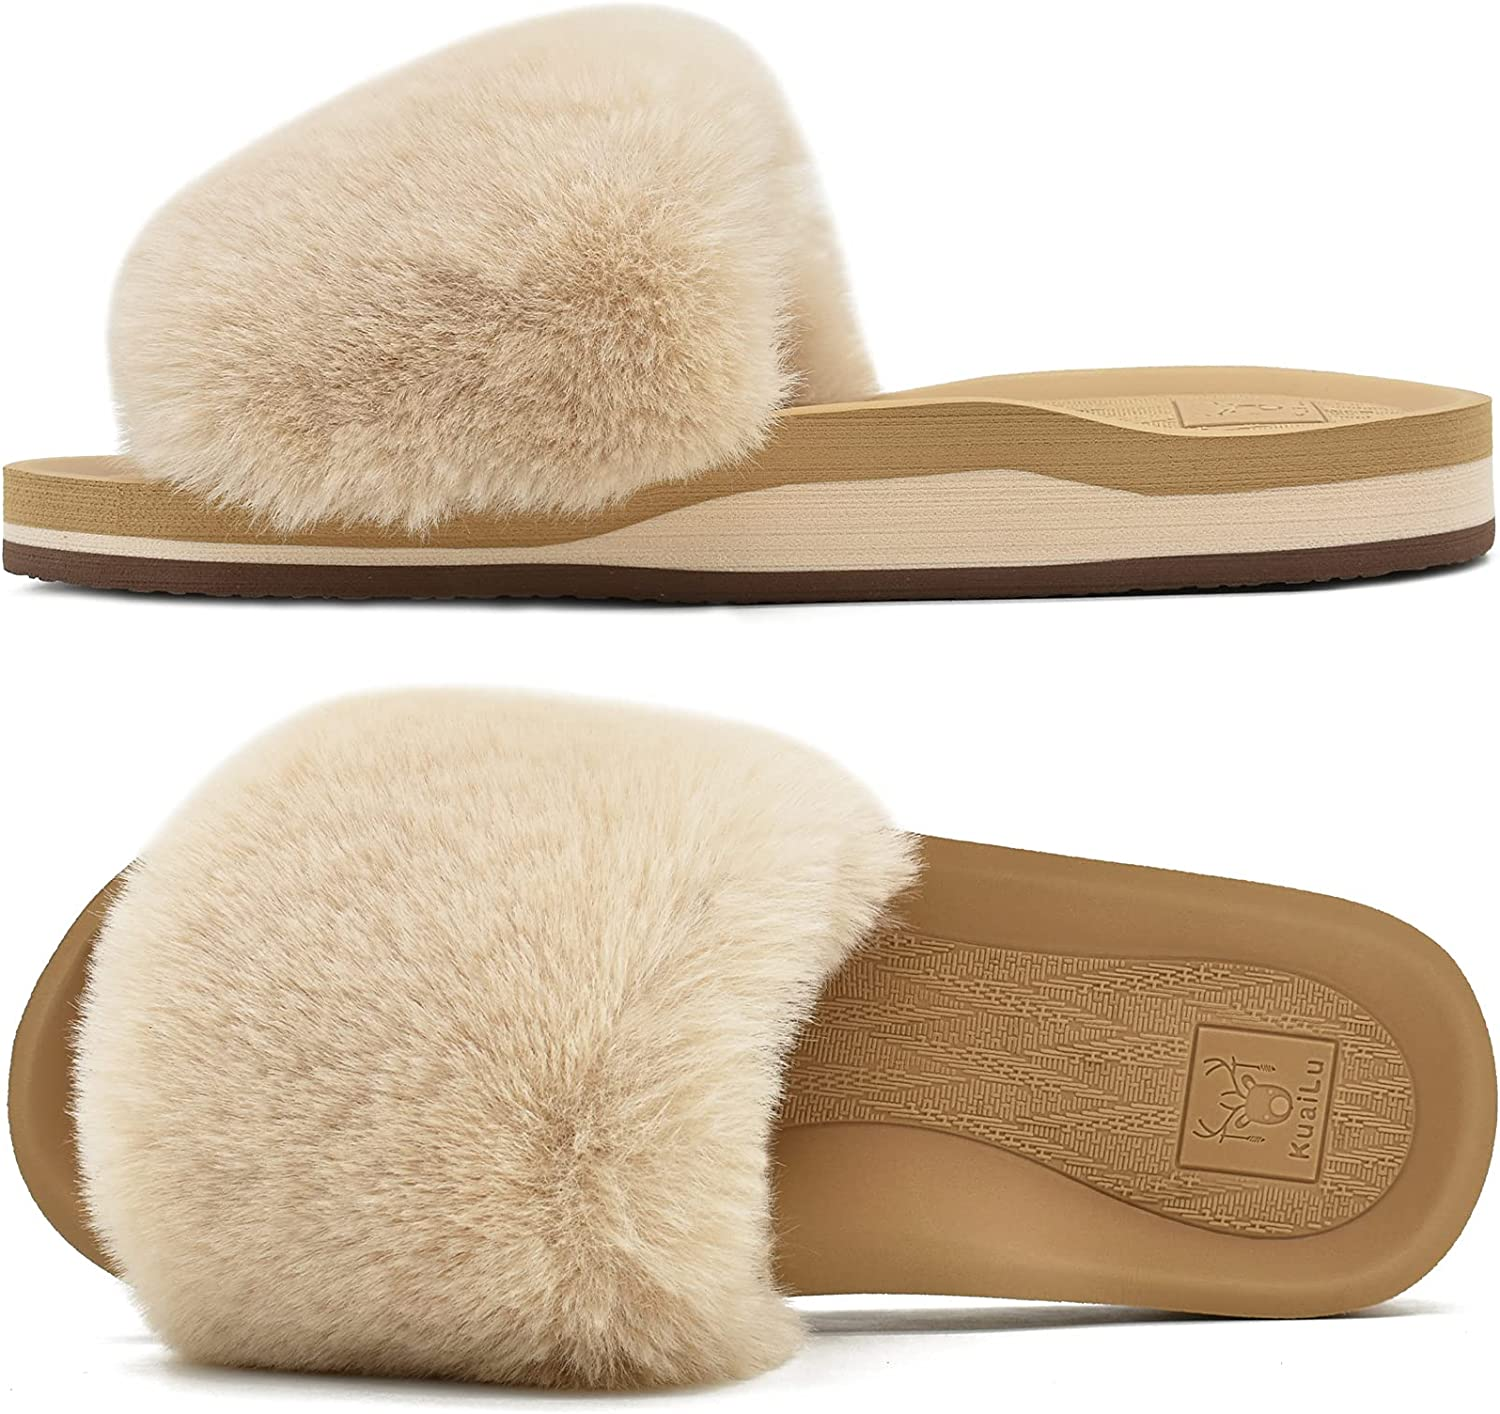 KuaiLu Womens Slides Ladies Plush Fluffy Flat Sandals Open Toe Slippers For Women With Plantar Fasciitis Arch Support For Indoor Outdoor